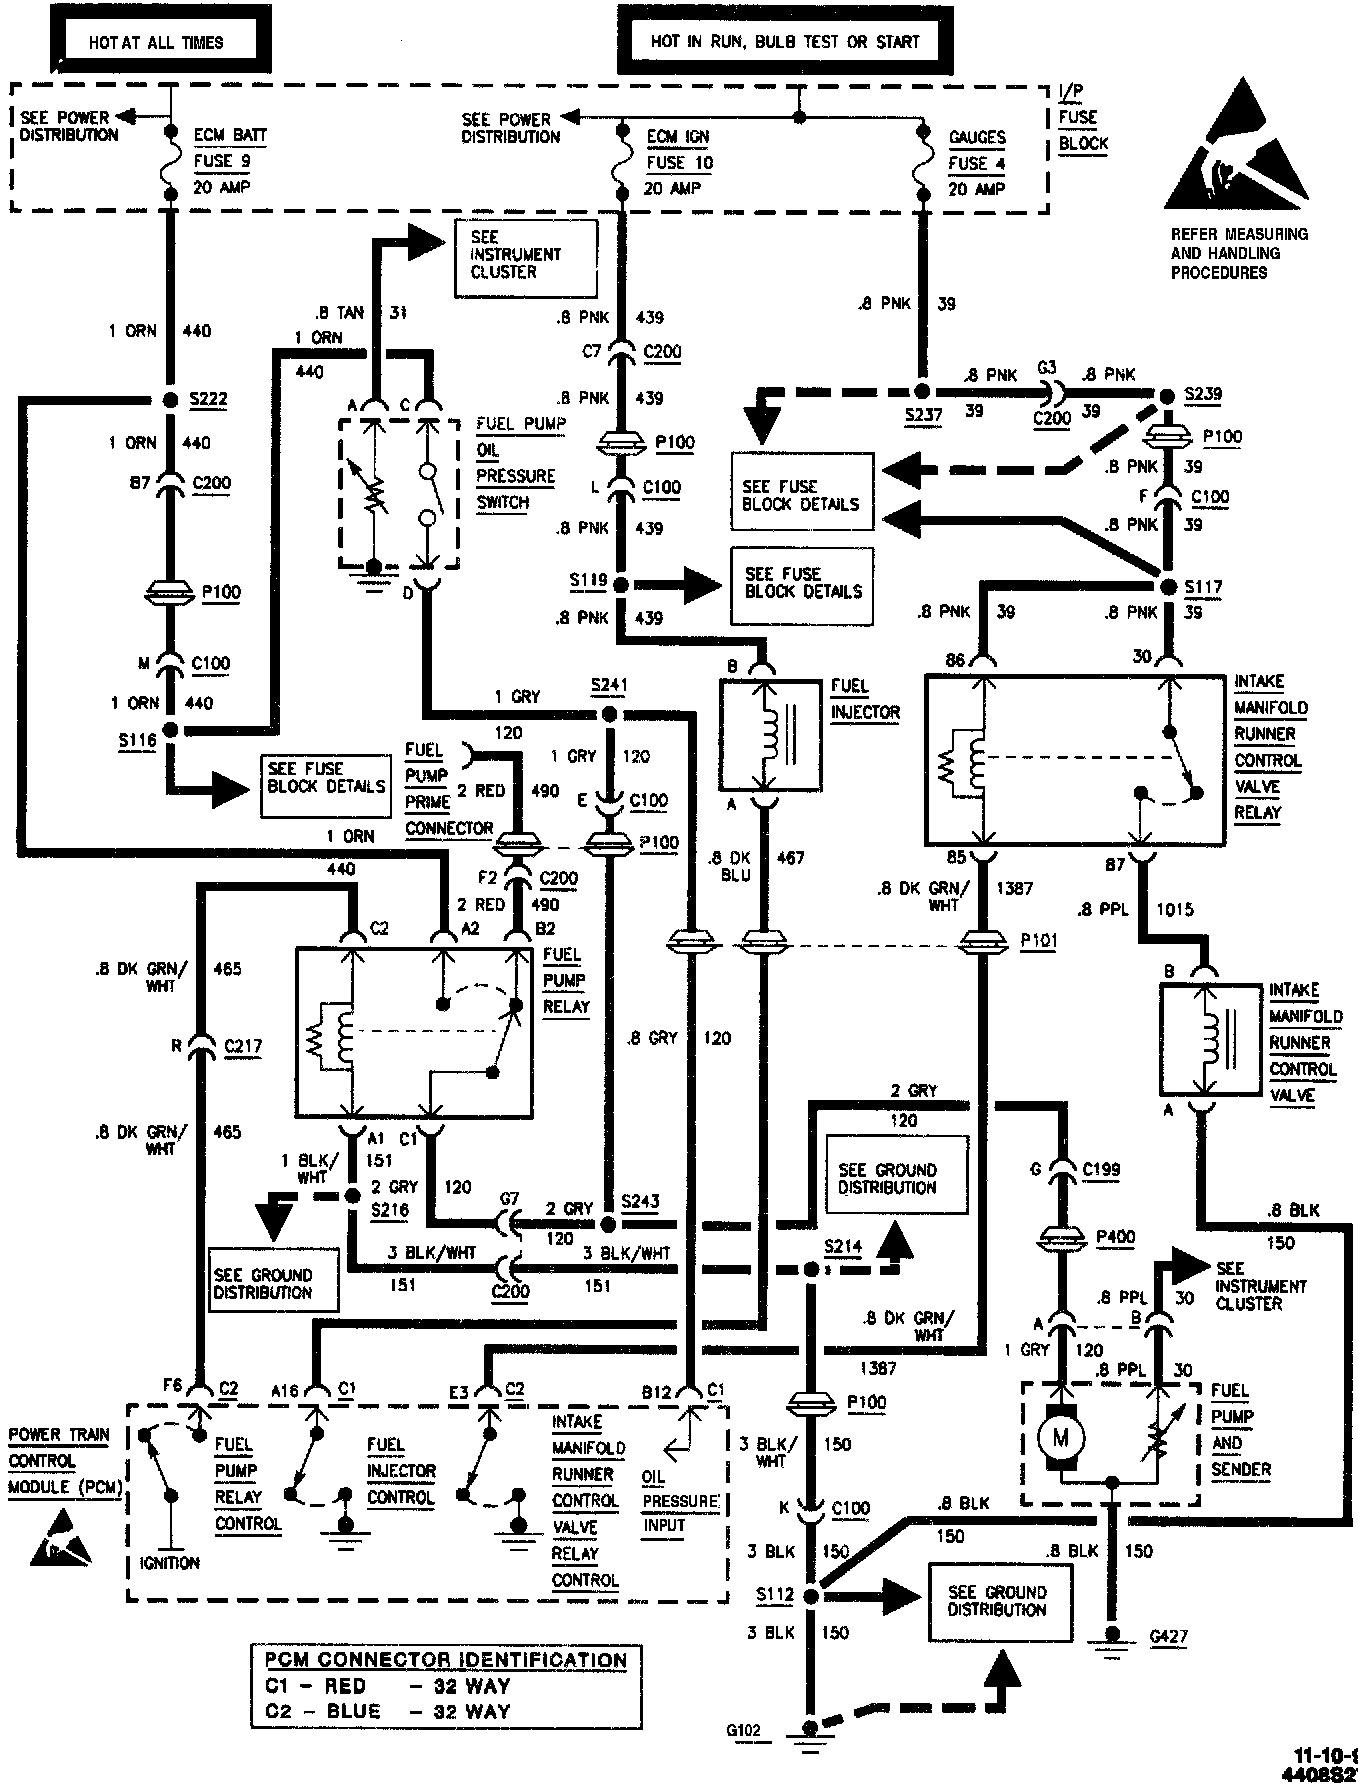 1995 chevy s10 diagram data wiring diagrams rh 4 vbgf treatymonitoring de